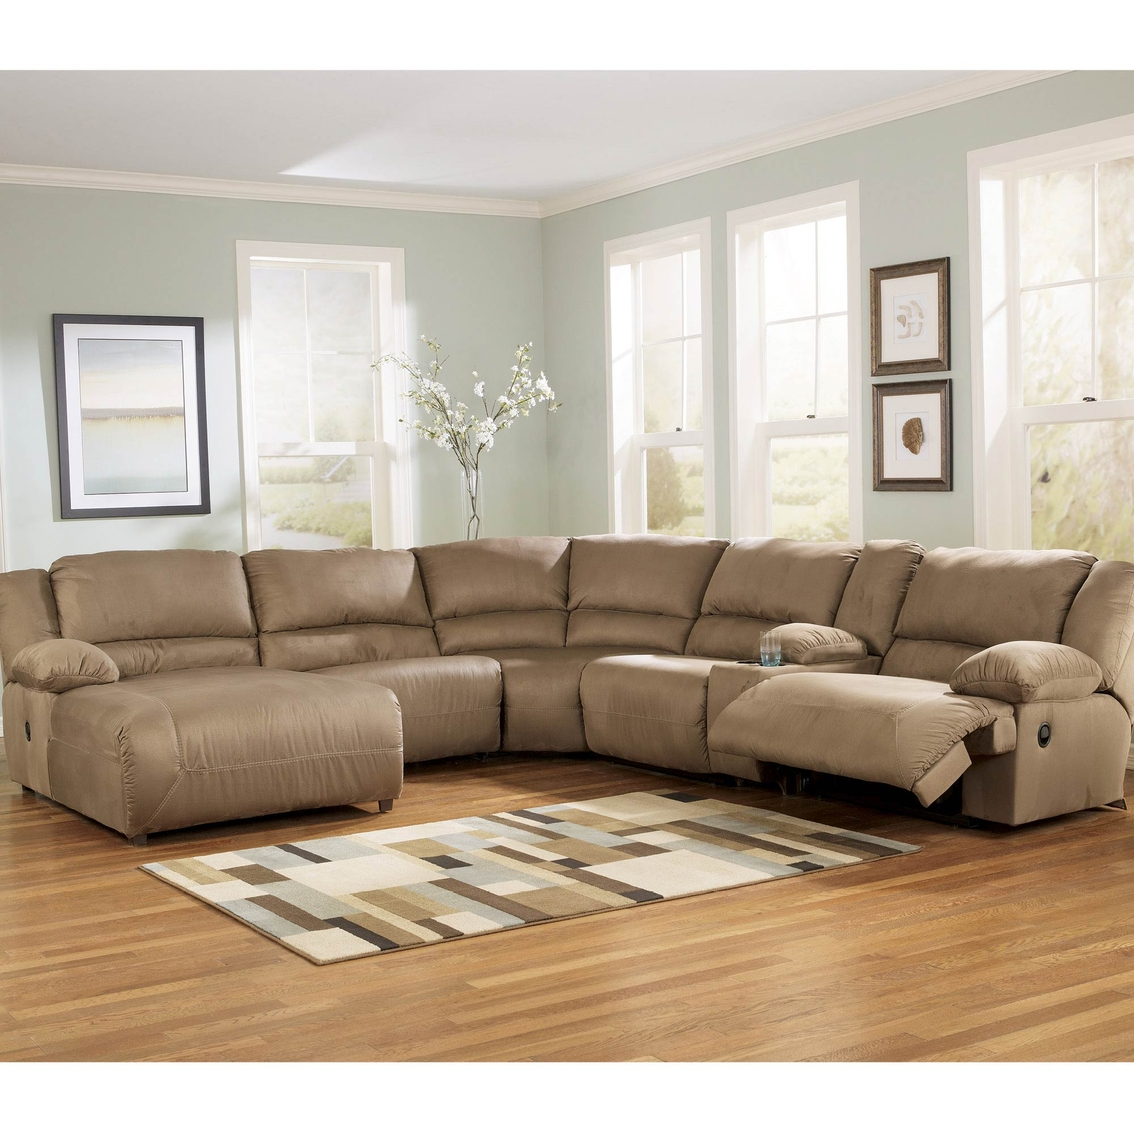 Ashley hogan sectional with two recliners and left arm for Ashley hogan chaise